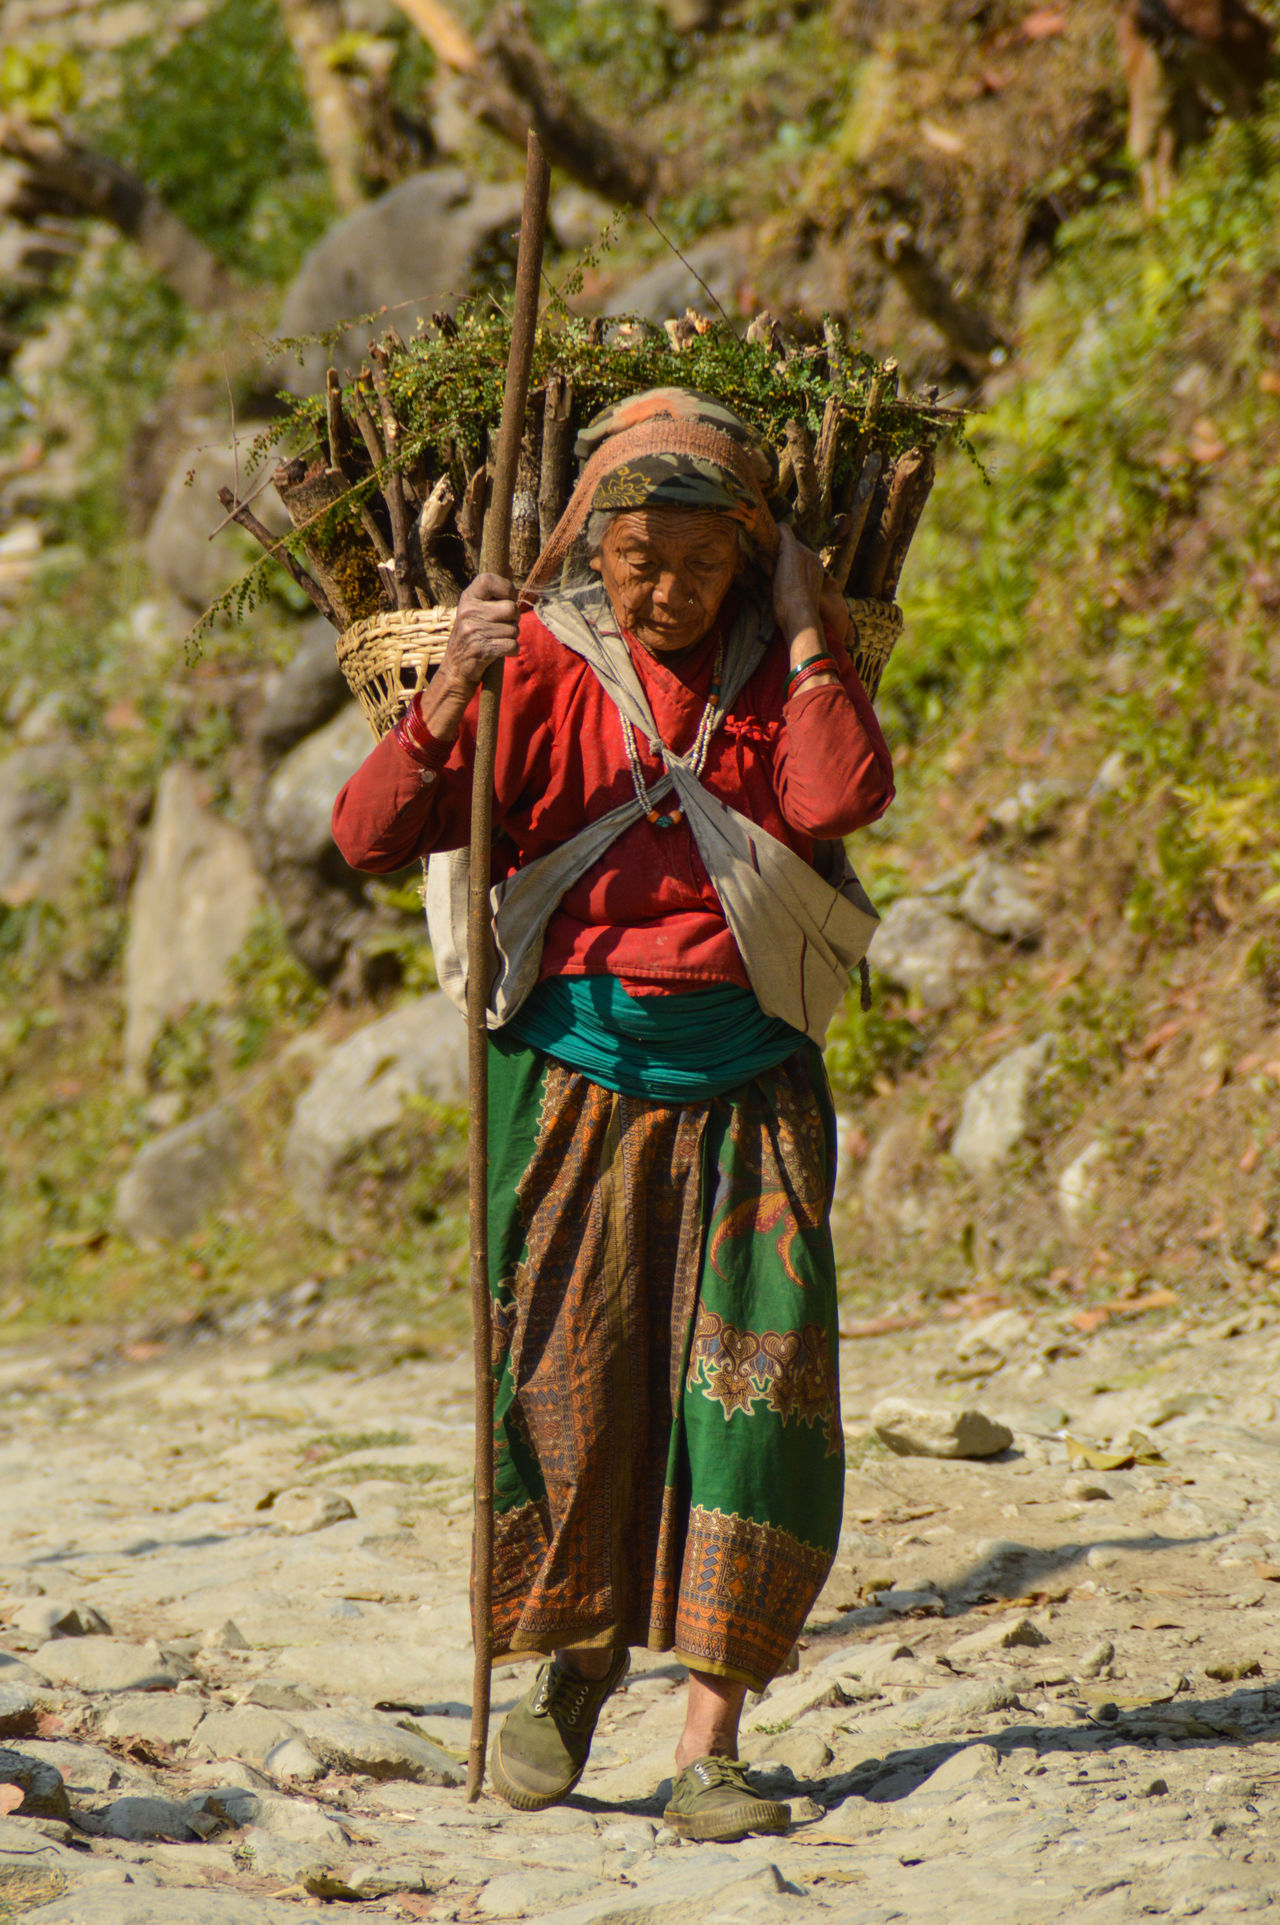 Outdoors One Person People Day Close-up Adult People Of Nepal Travel Destinations Travel Travel Photography People Photography Traditional Clothing Women Of Nepal Culture And Tradition Woman At Work Countryside Tradition Nepal Women Carrying Heavy Loads Women At Work Miles Away